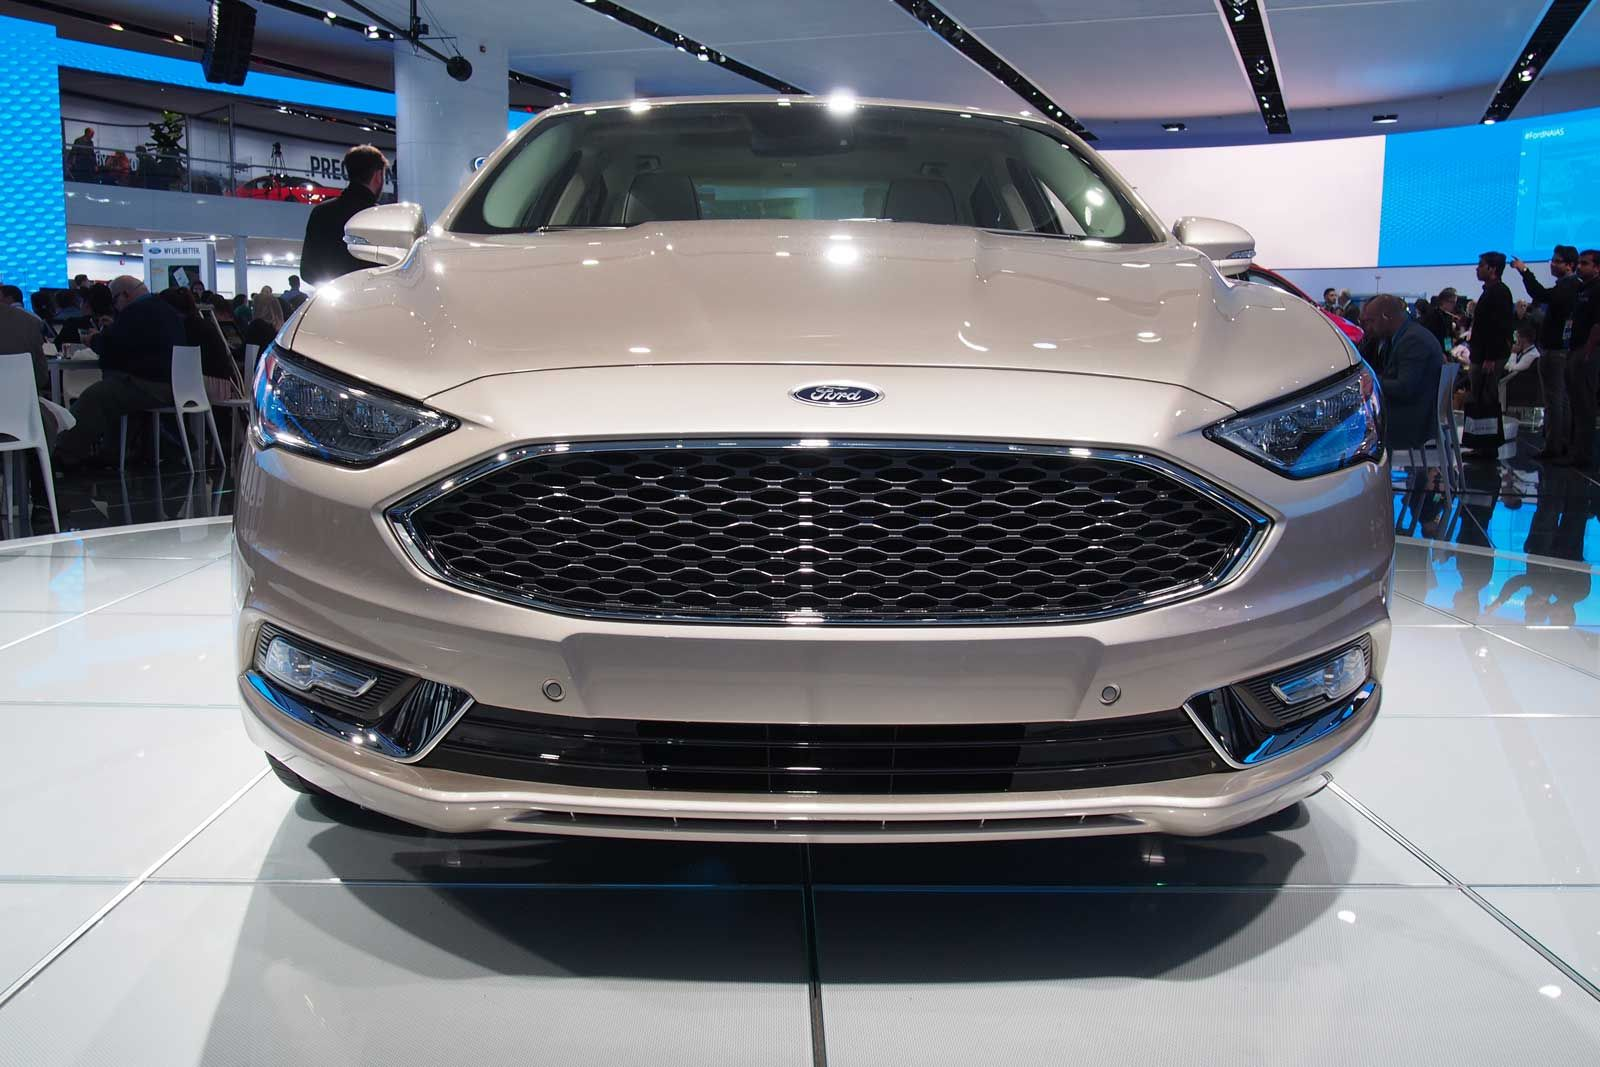 2015 ford mondeo vignale review price and release date 2015 ford mondeo vignale review price and release date ford has unveiled it s brand new 2